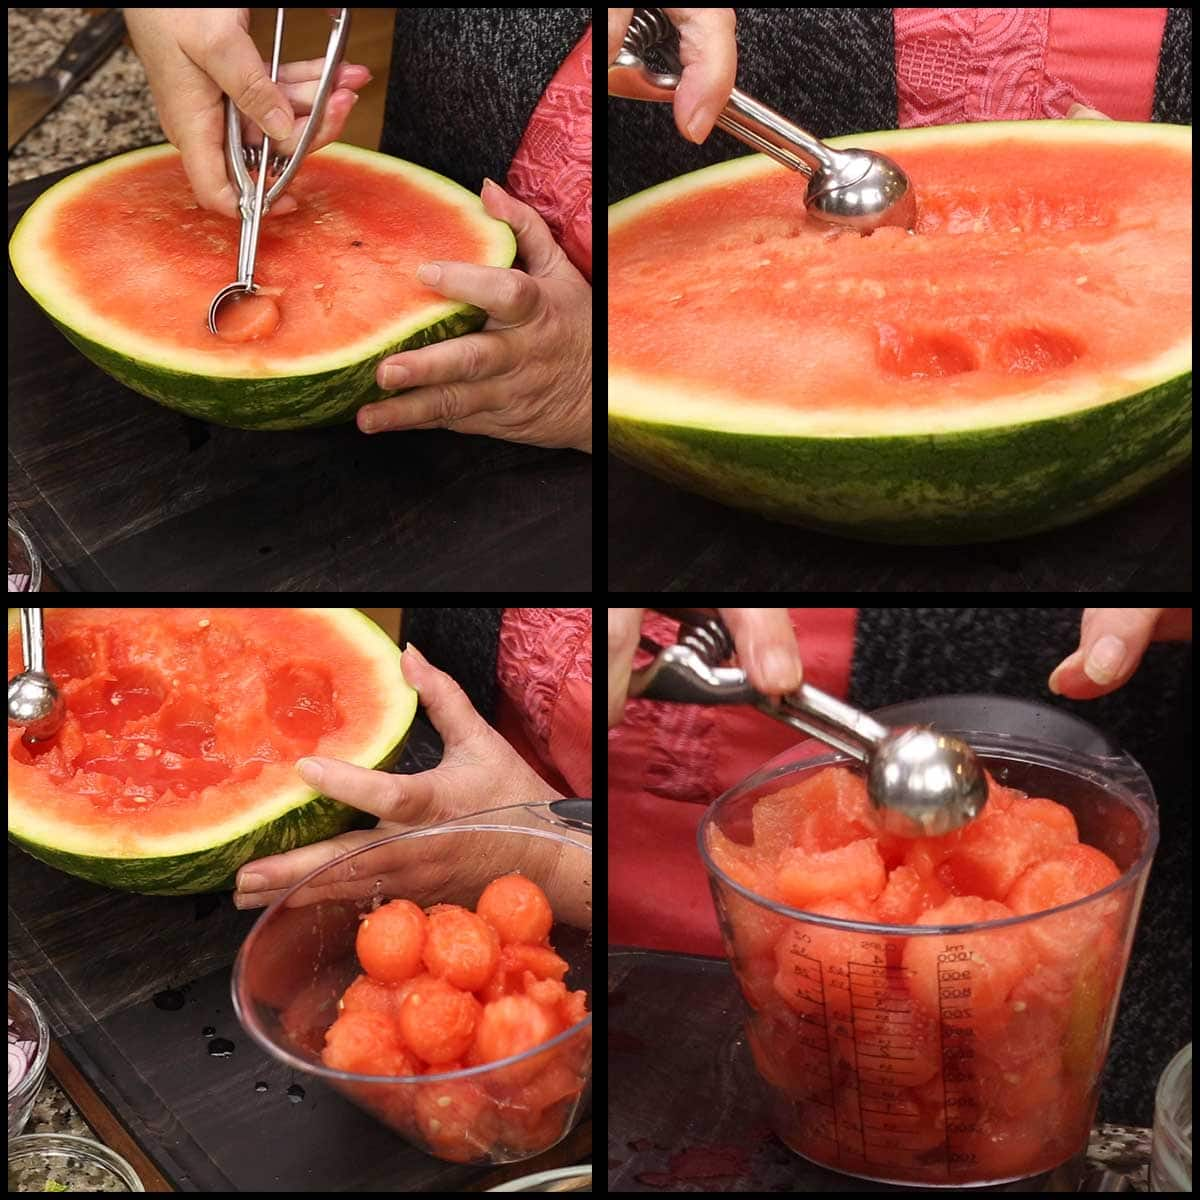 scooping out watermelon from rind